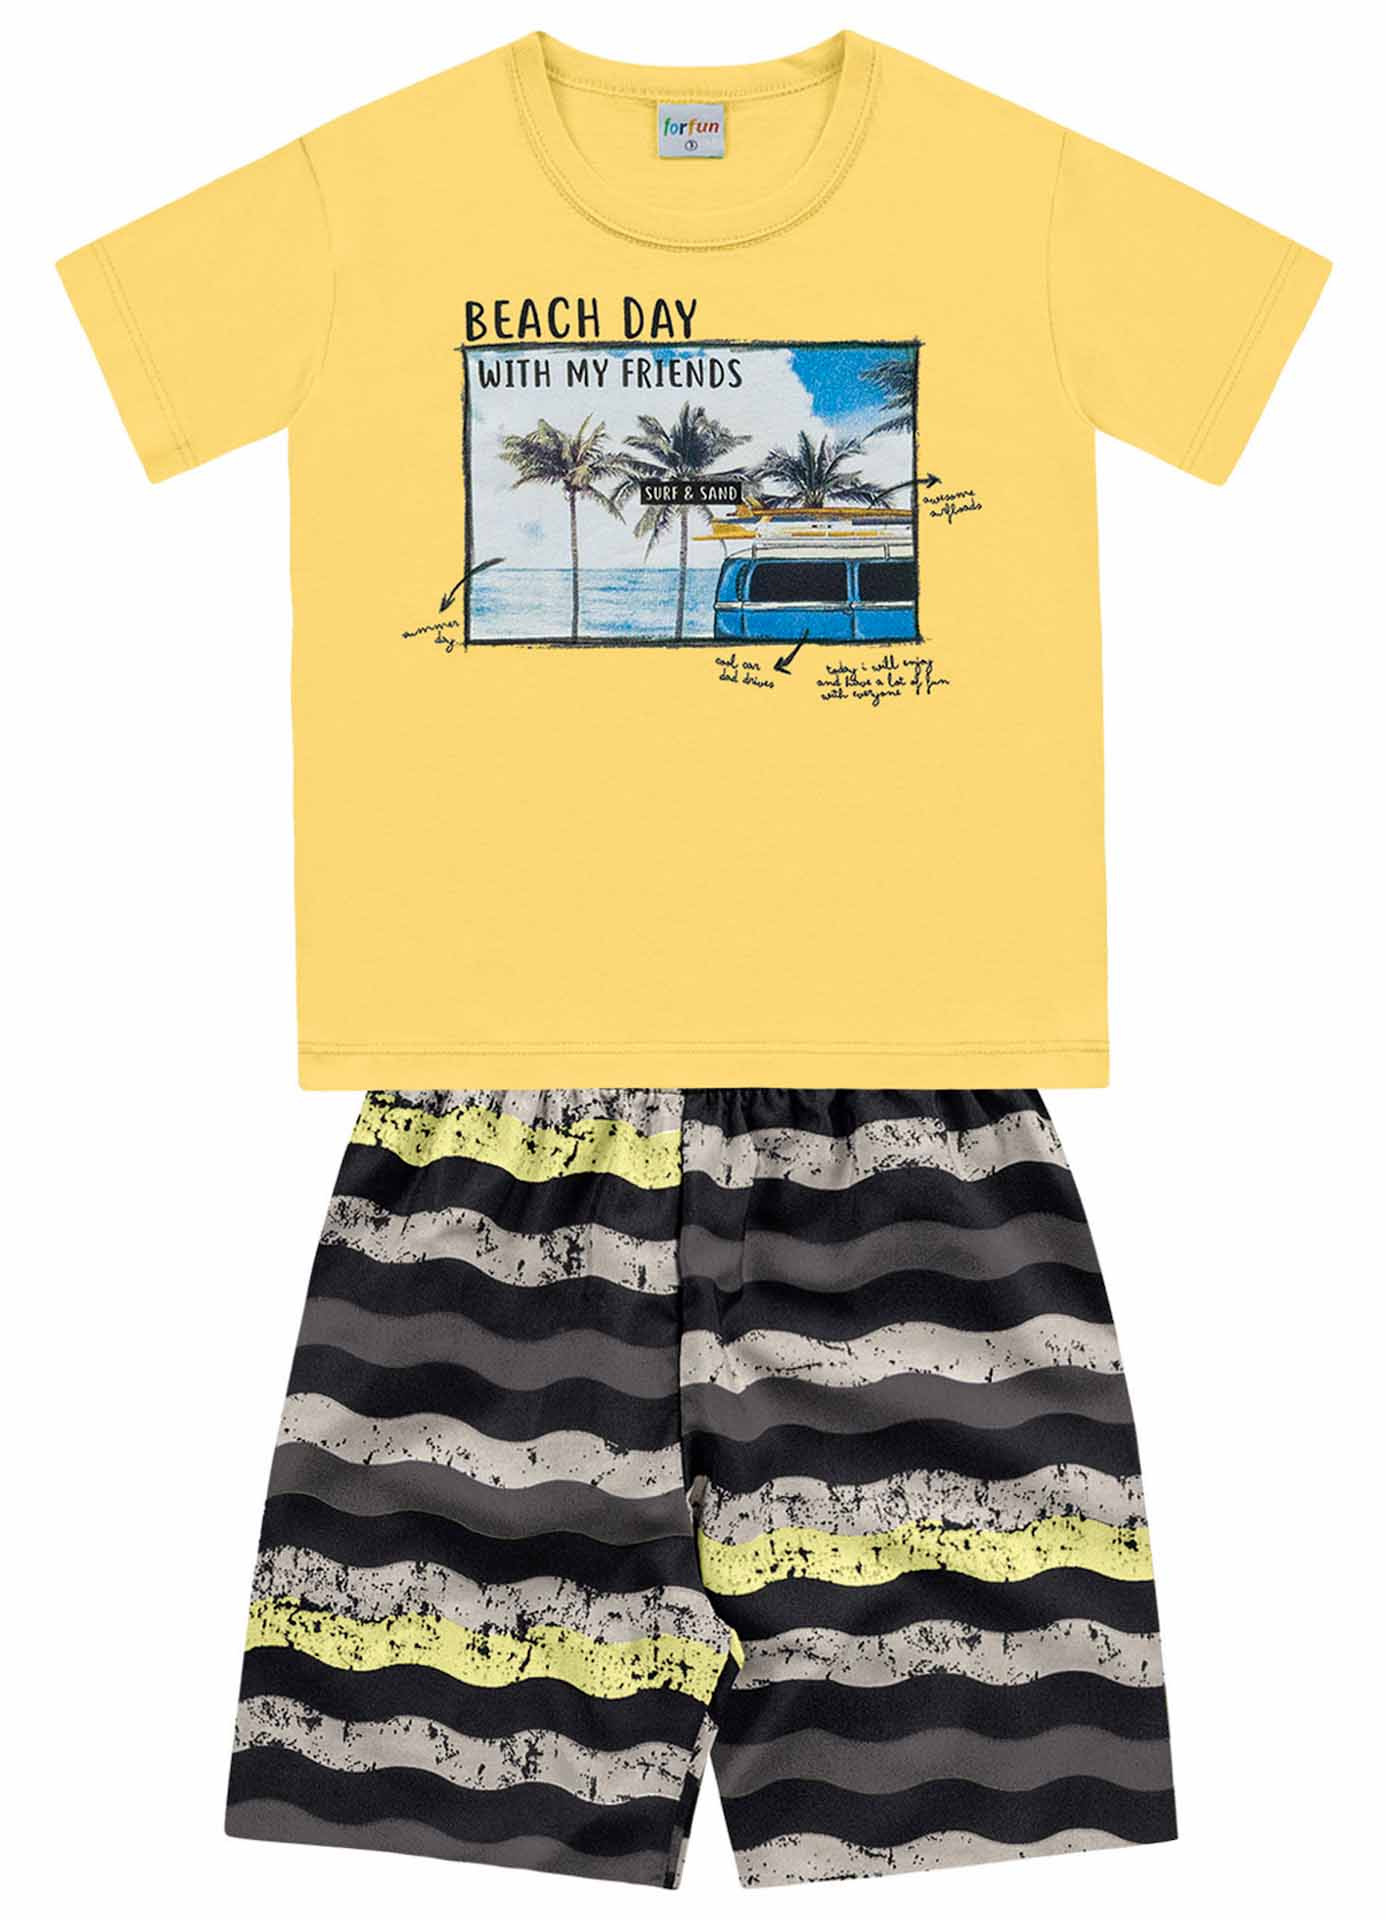 CONJUNTO CAMISETA/BERMUDA BEACH DAY